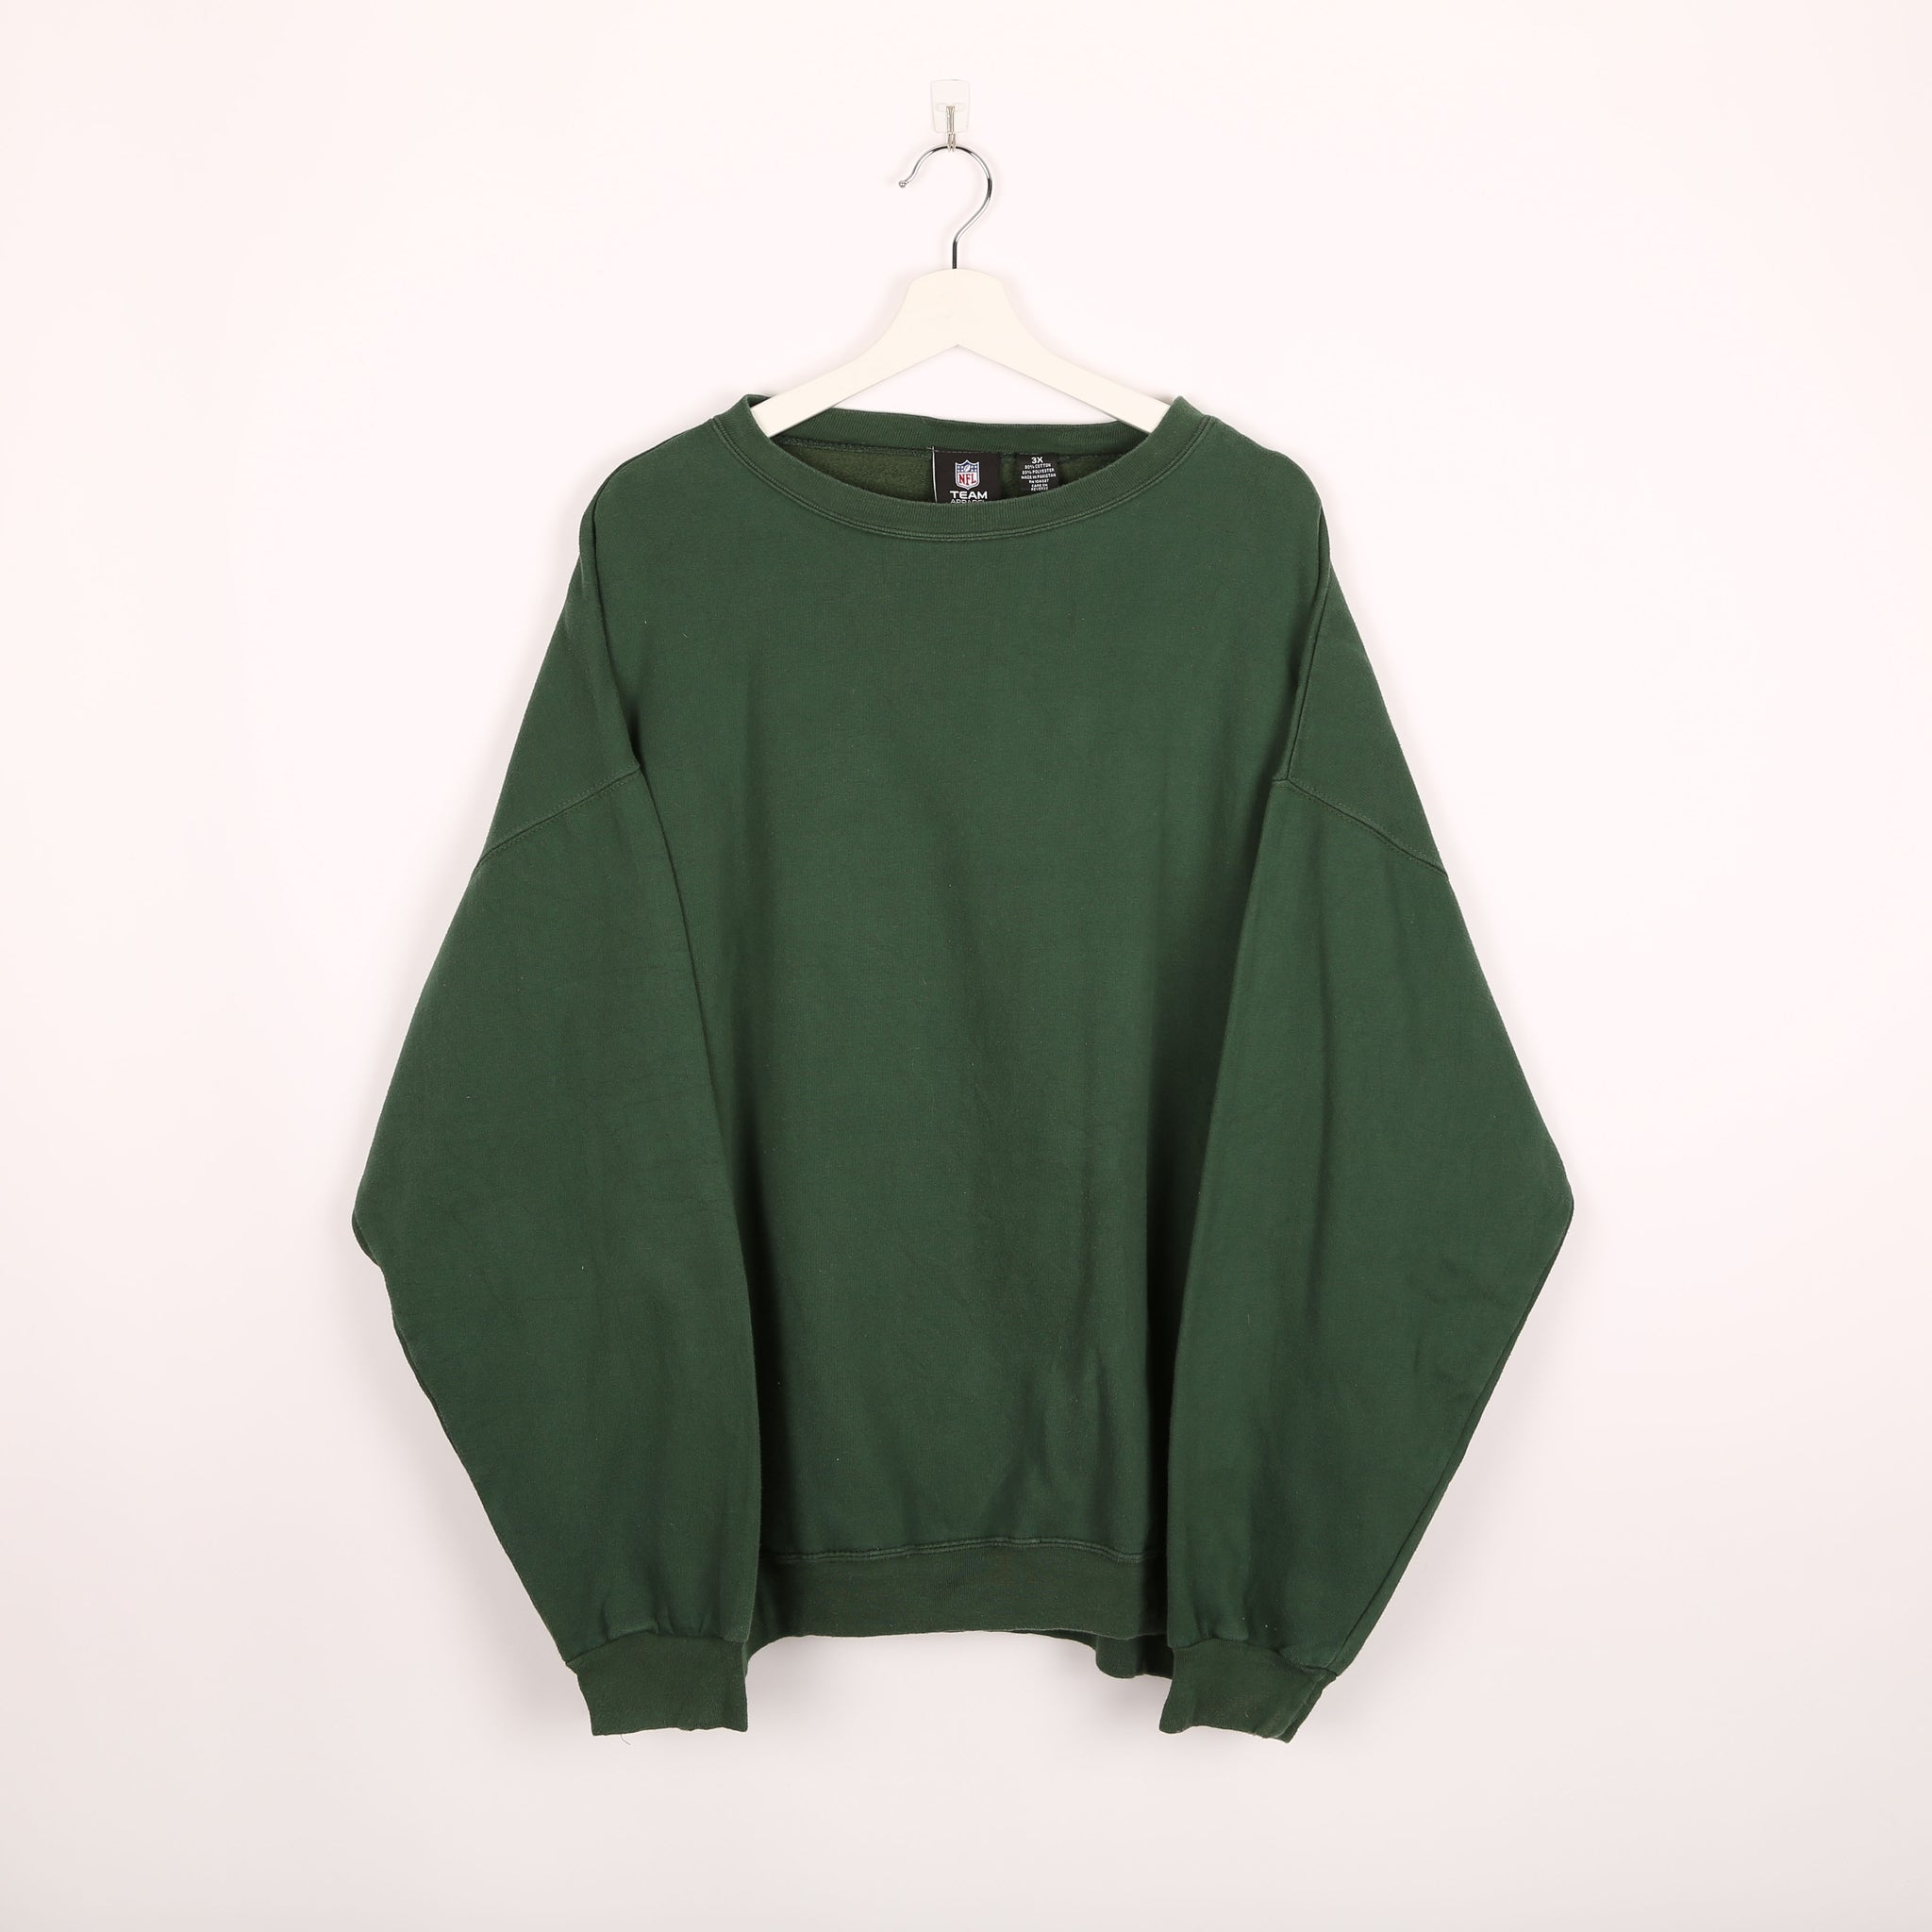 NFL Merch Sweatshirt Green XXXLarge